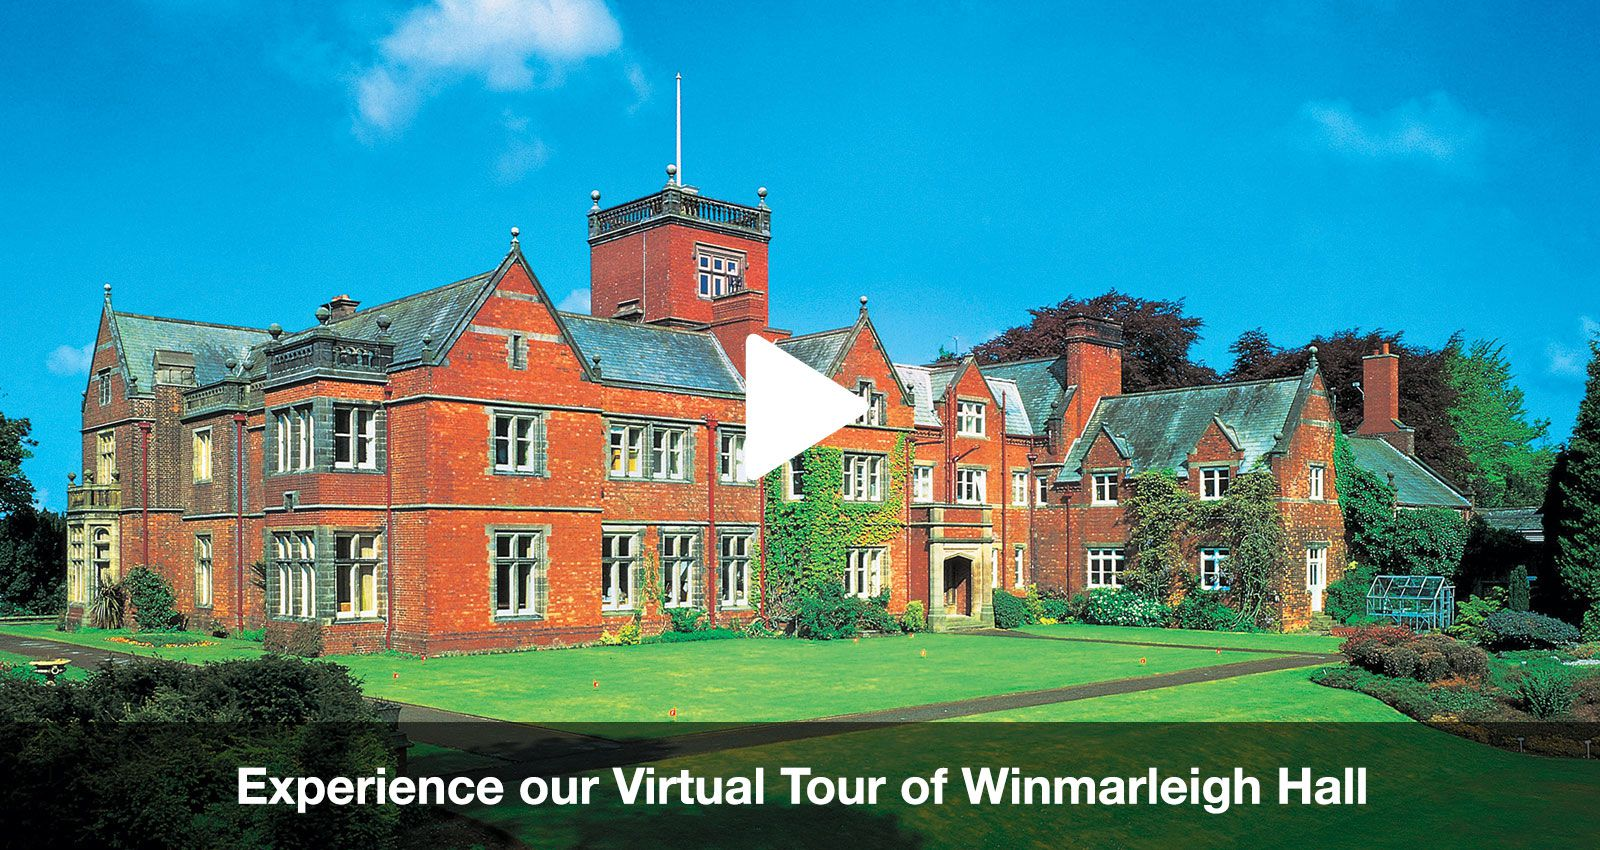 Winmarleigh Hall for International Students